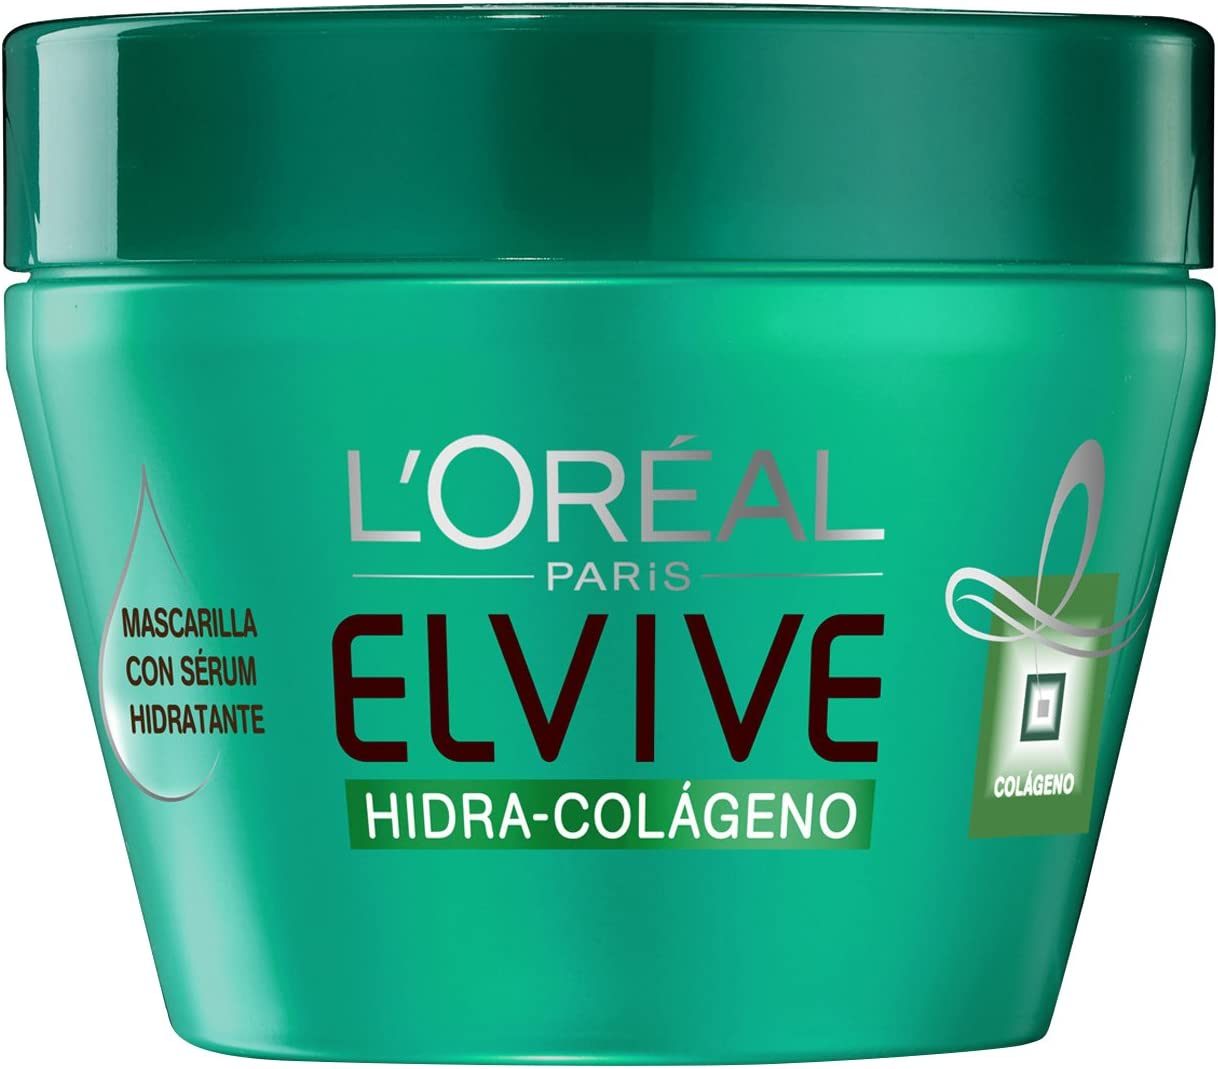 Elvive Hidra-Colageno Mascarilla 300 ml